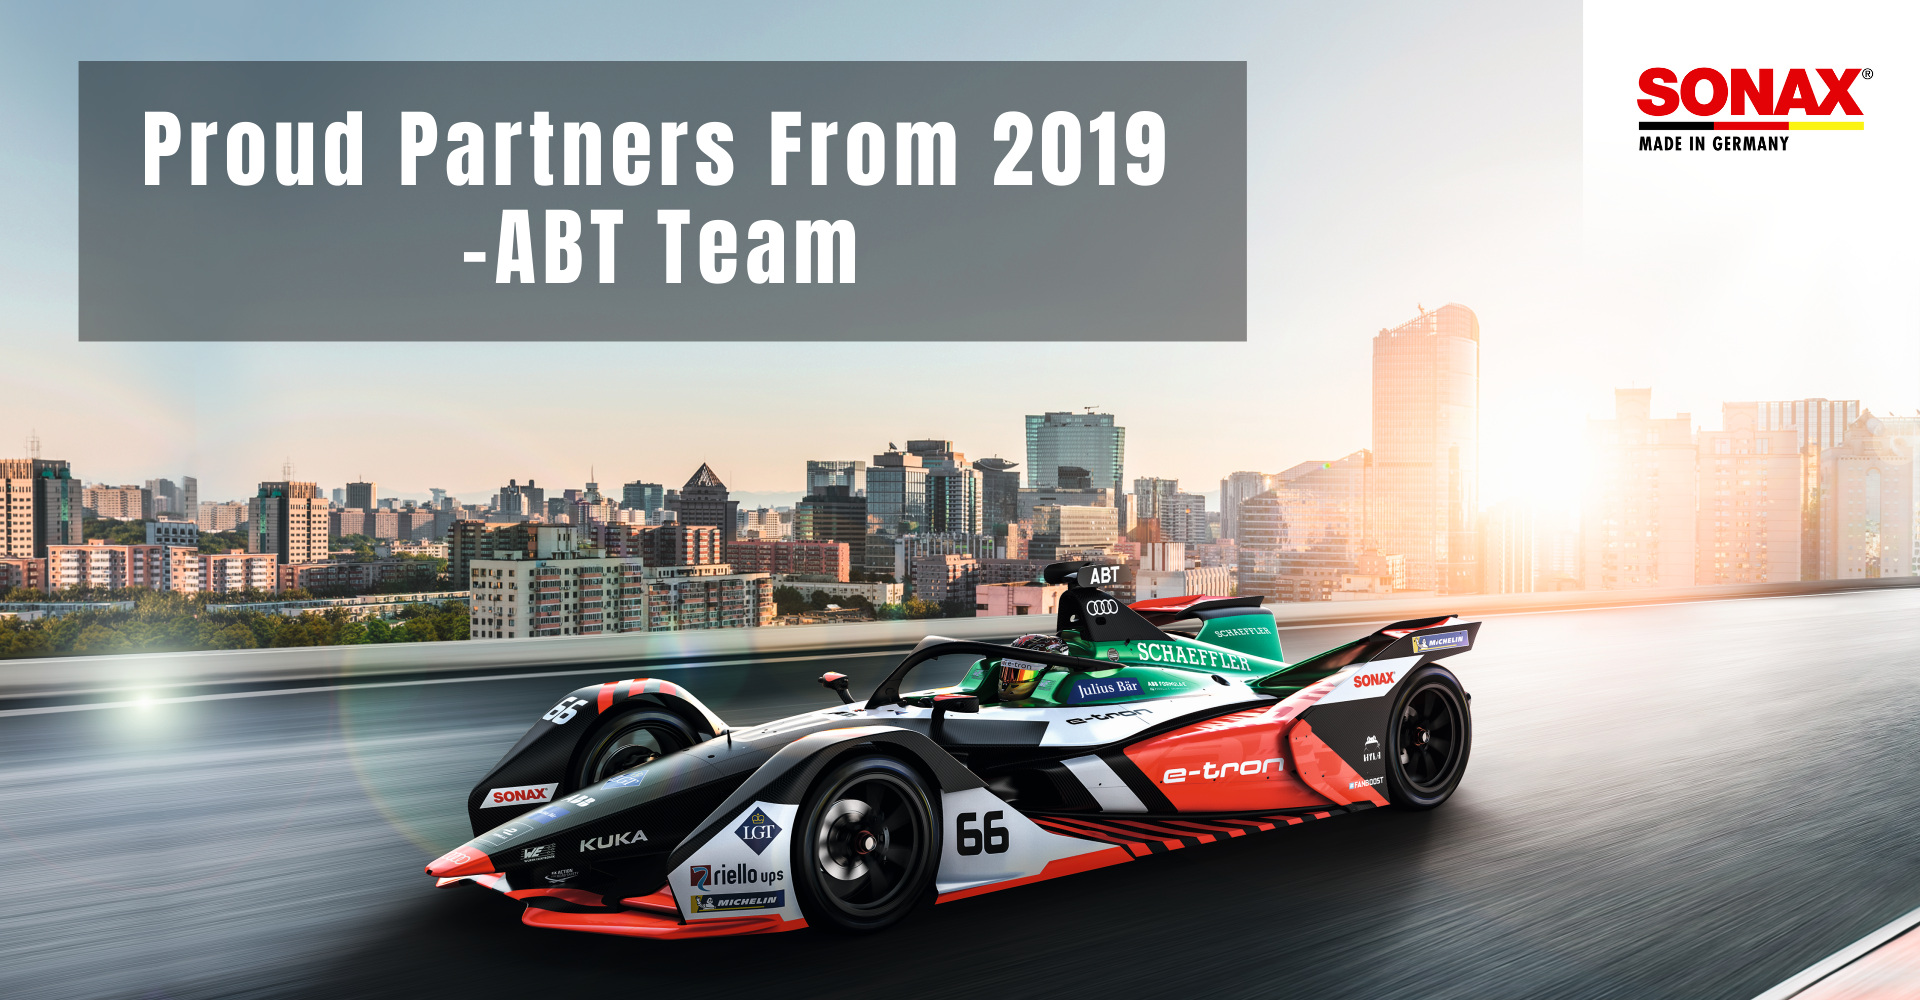 Proud Partners From 2019 - ABT Team